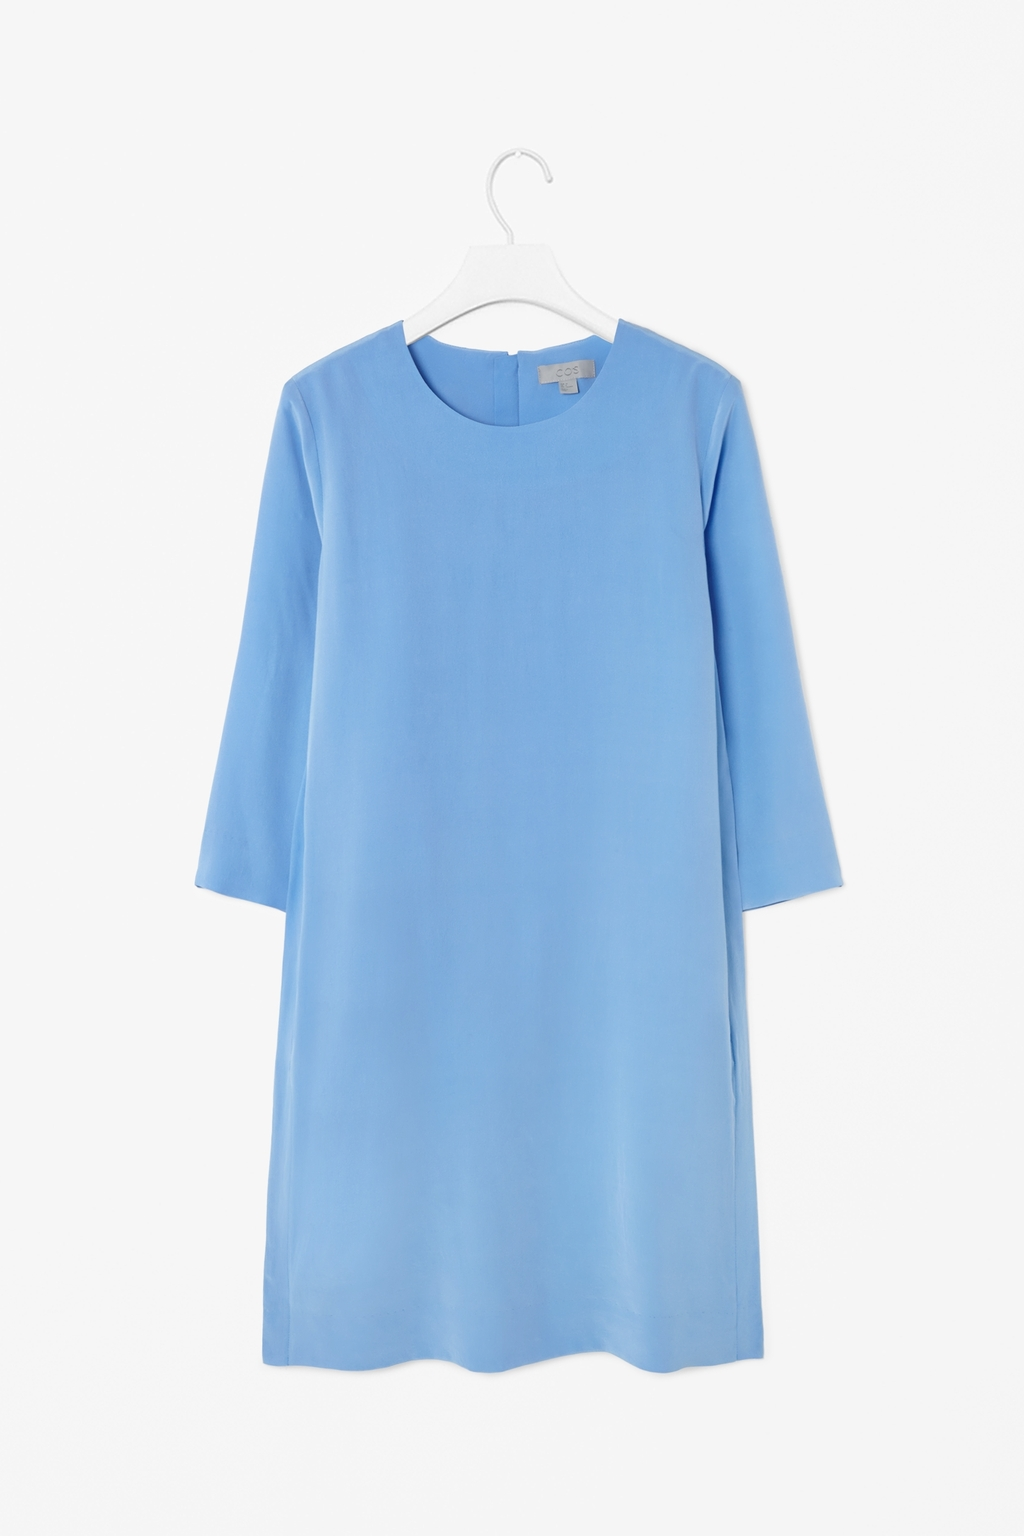 Round Neck Silk Dress - style: shift; length: mid thigh; neckline: round neck; pattern: plain; predominant colour: pale blue; occasions: evening, creative work; fit: soft a-line; fibres: silk - 100%; sleeve length: 3/4 length; sleeve style: standard; texture group: silky - light; pattern type: fabric; season: s/s 2014